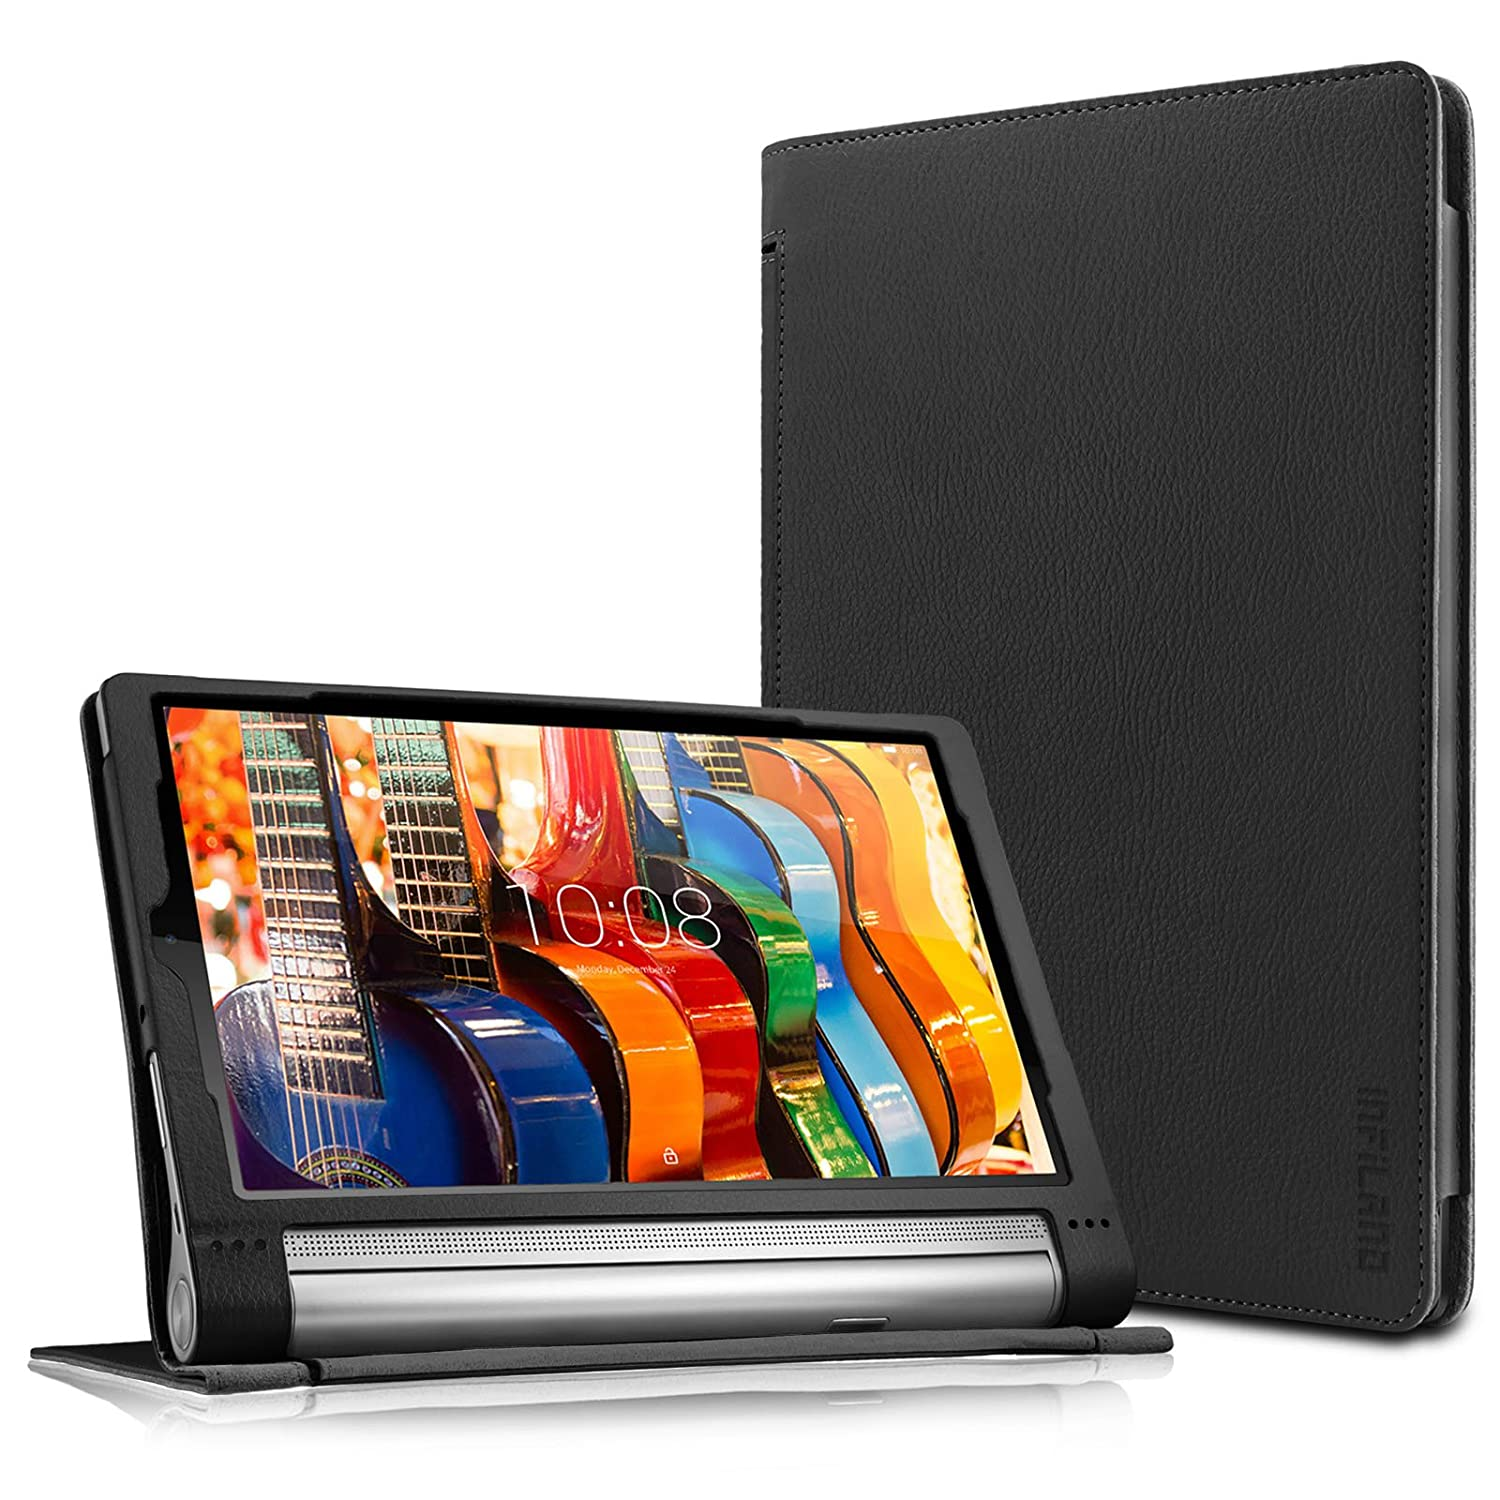 Amazon.com: Yoga Tab 3 pro 10 Estuche, Negro: Computers ...